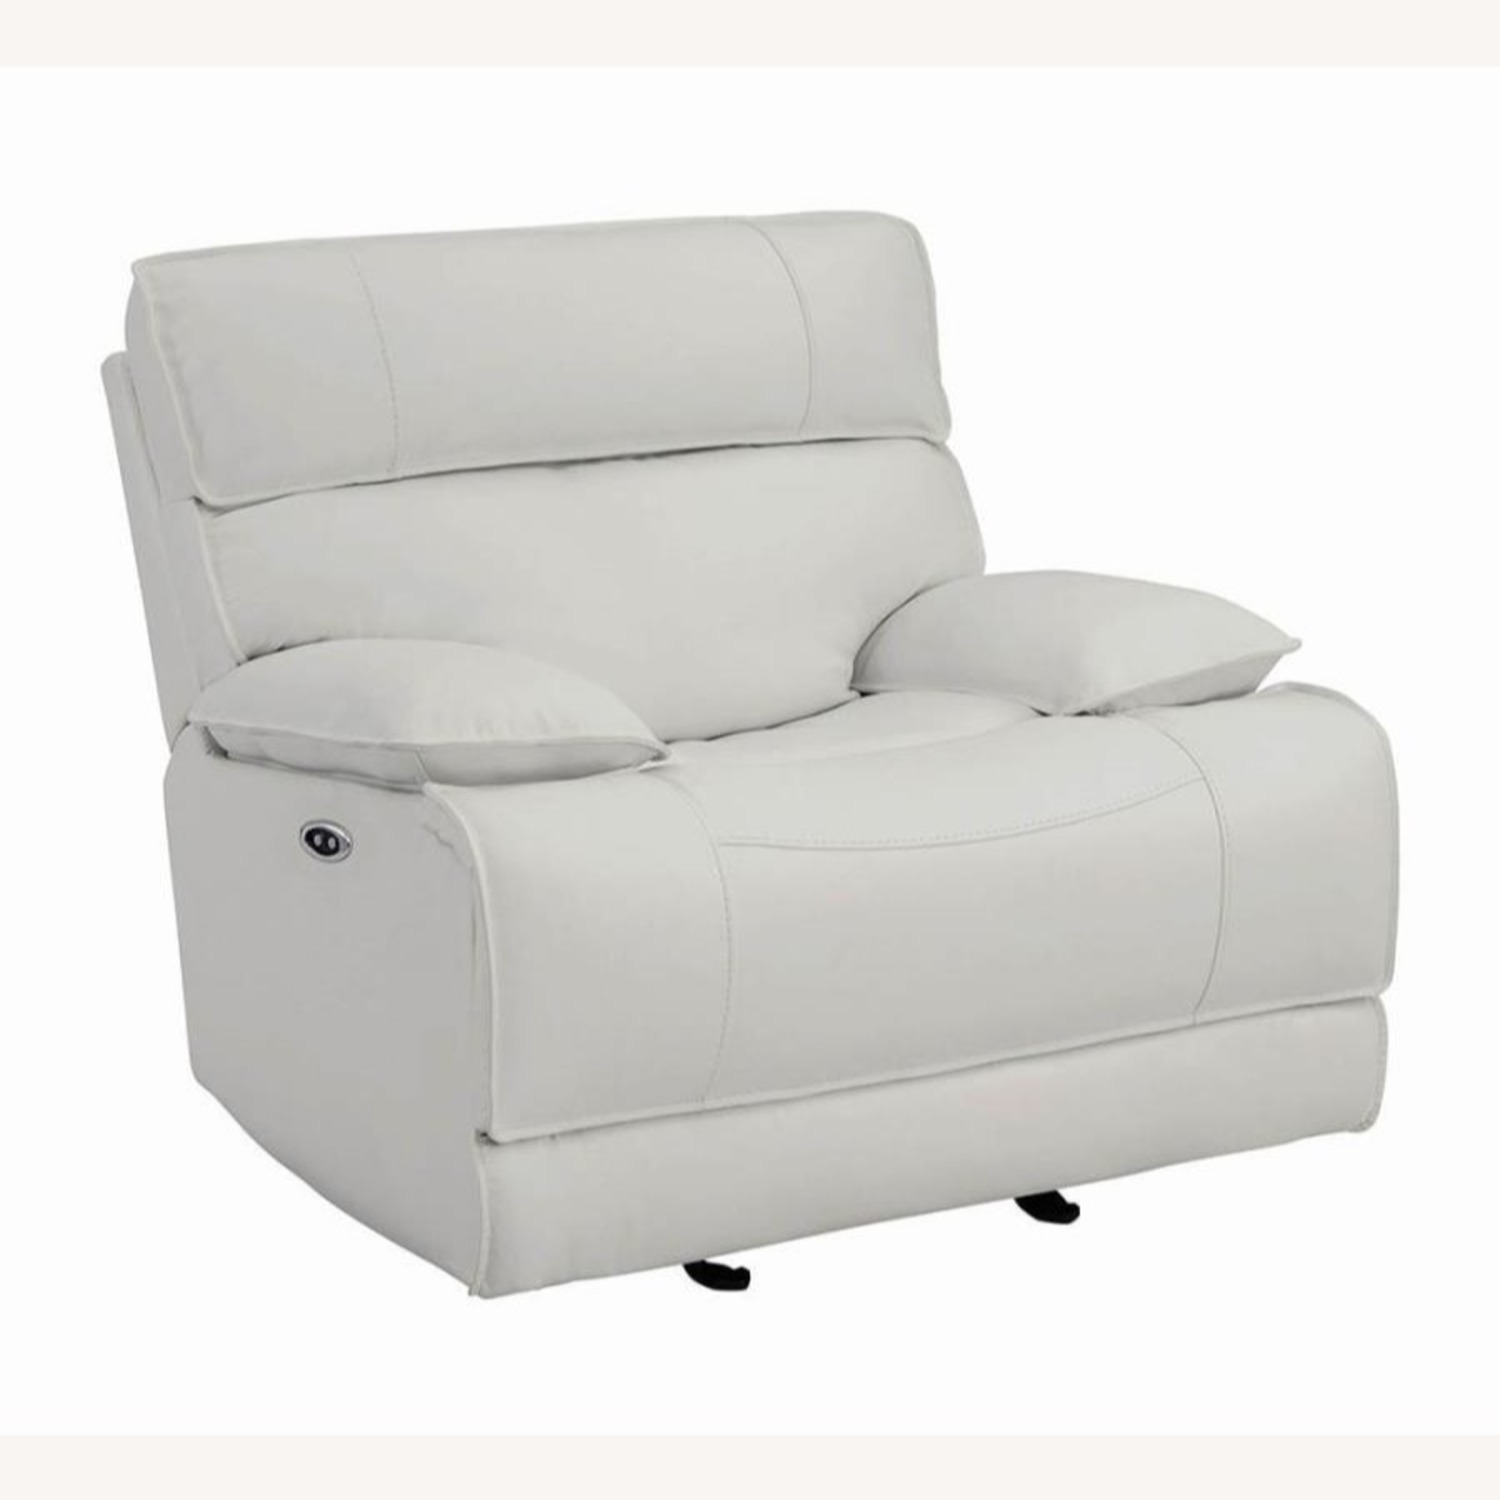 Power Glider Recliner Upholstered In White Leather - image-0